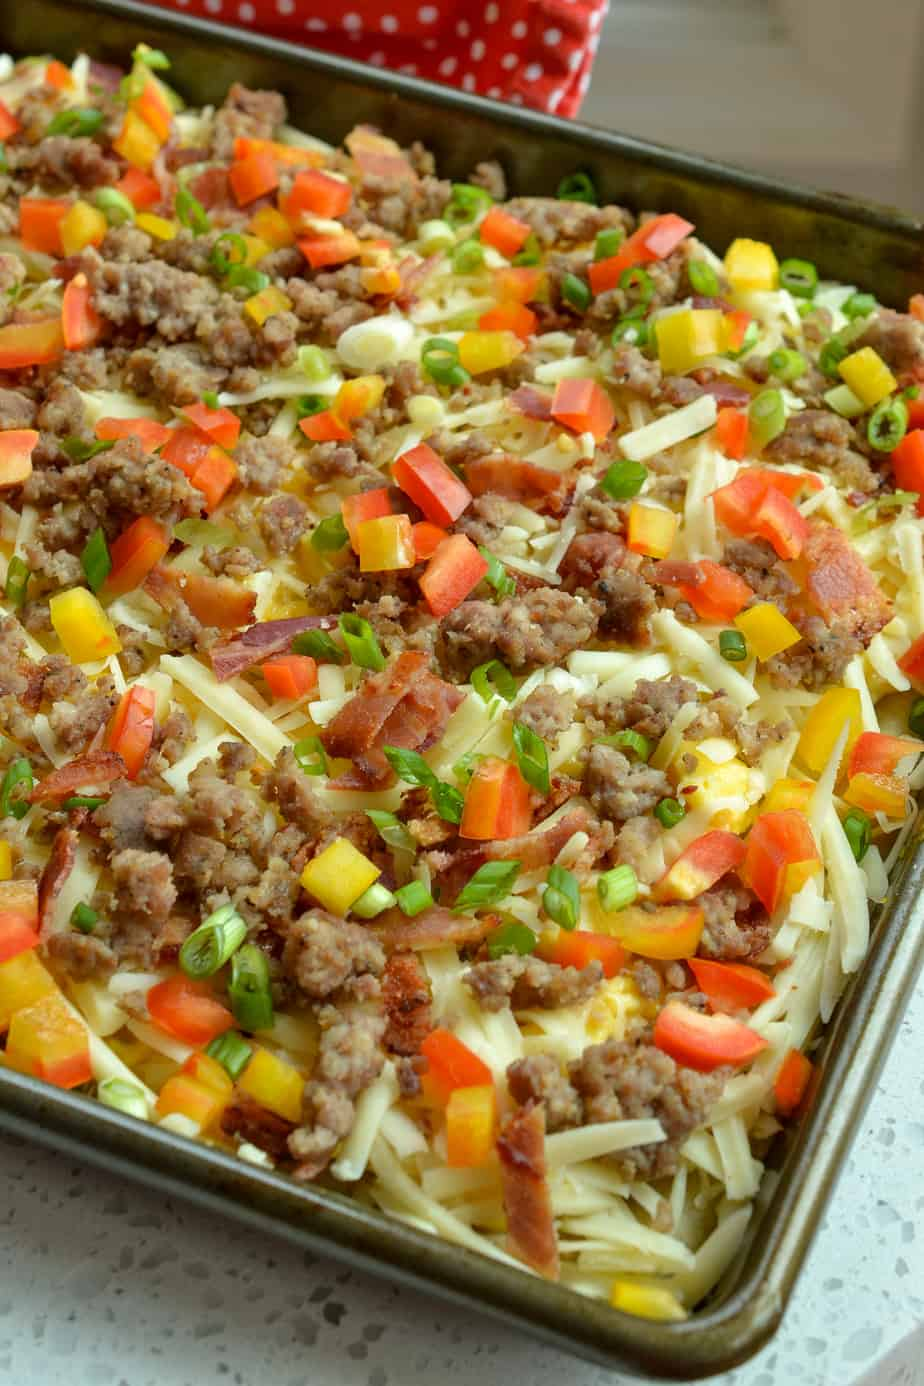 Scrumptious Breakfast Pizza is one of our all time favorite family breakfasts.